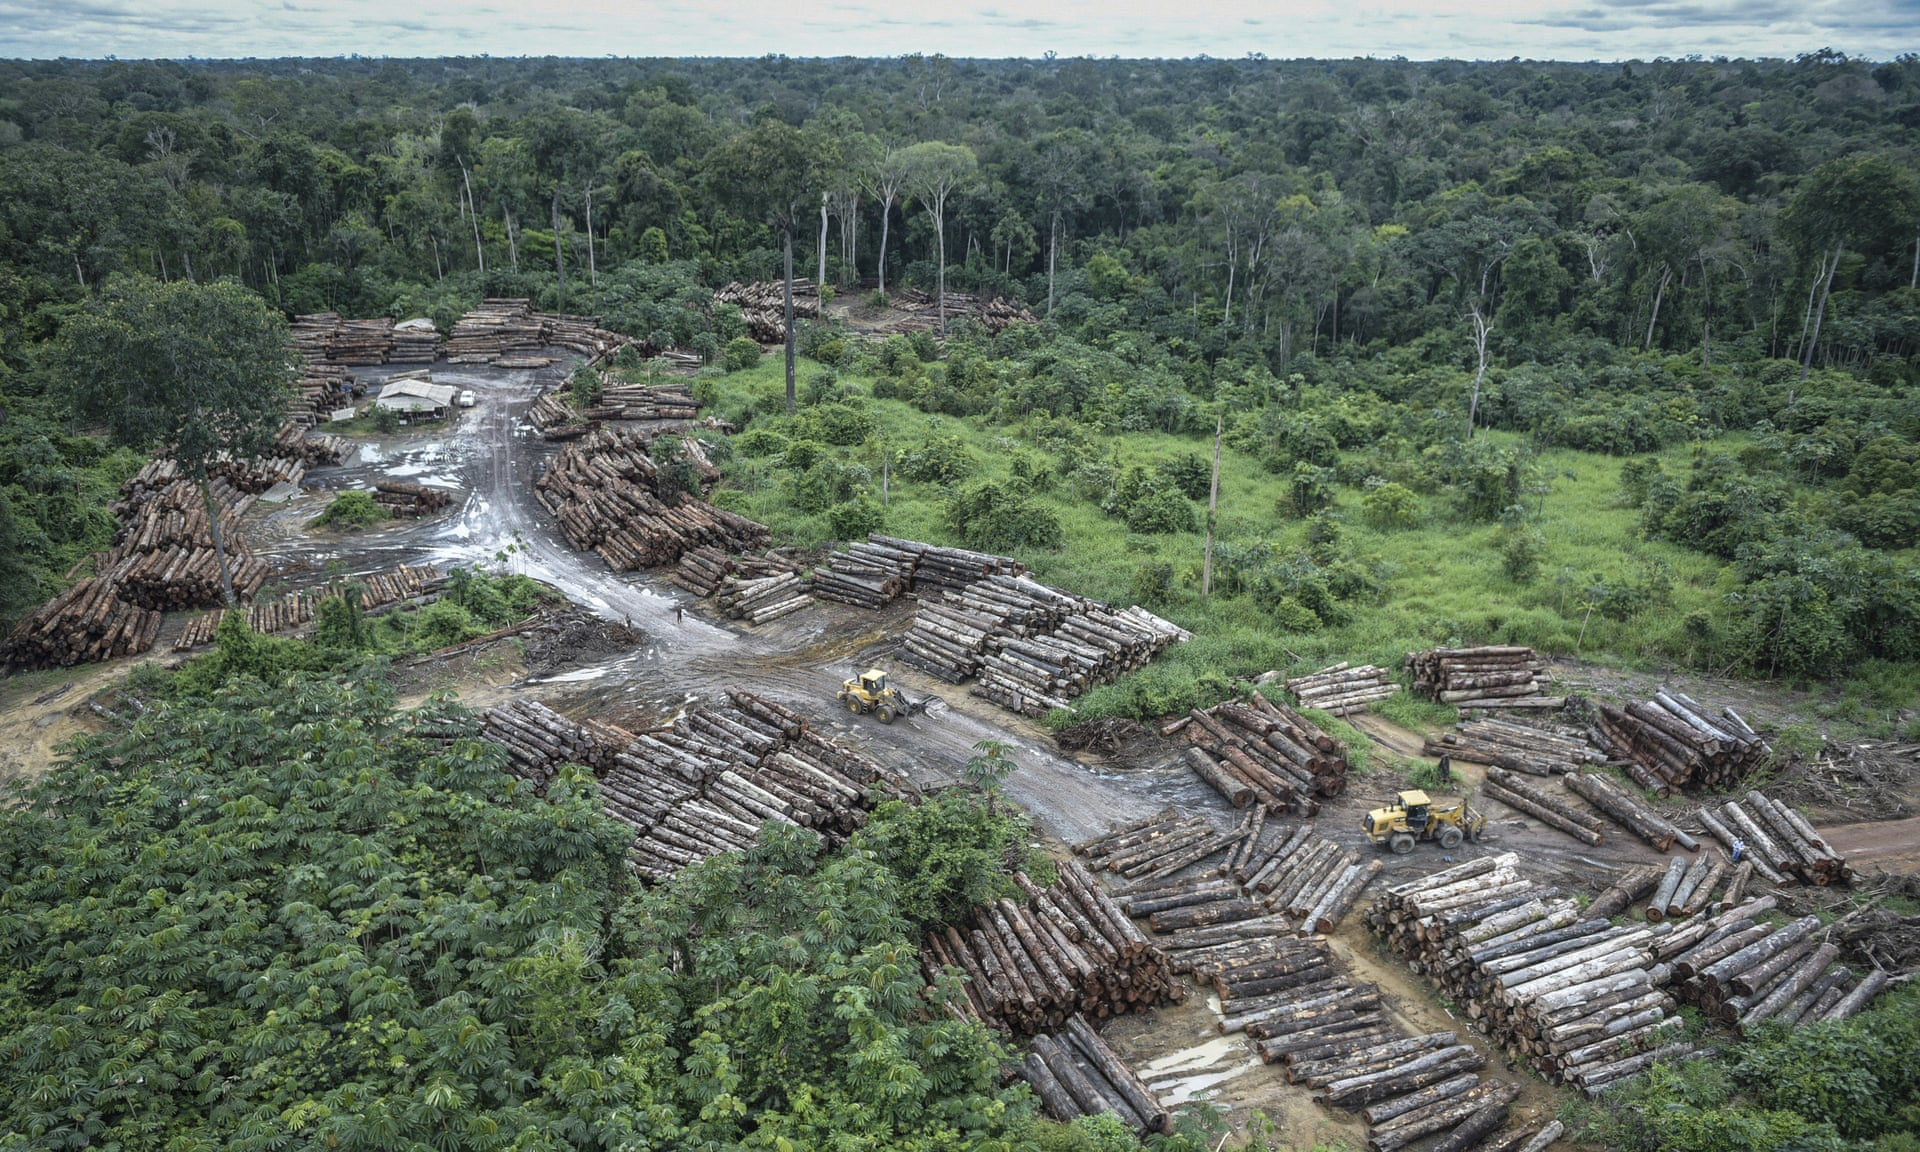 Brazil: huge rise in Amazon destruction under Bolsonaro, figures show